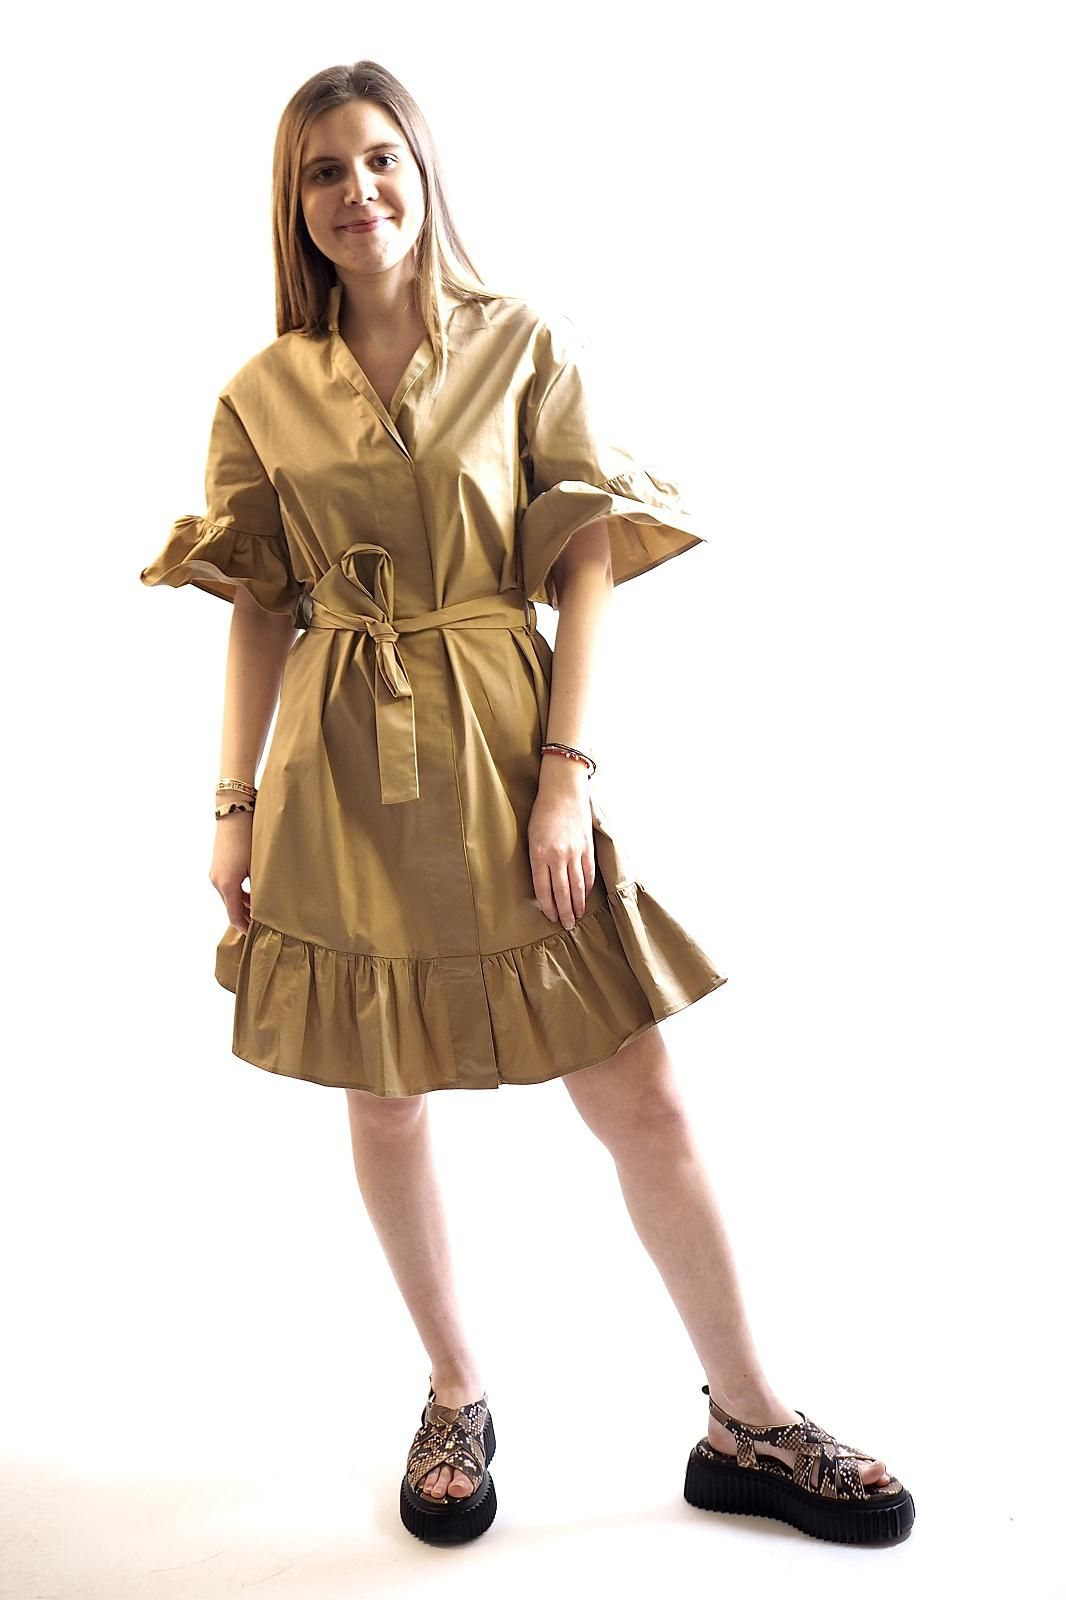 Sylvian Heach robe Camel femmes (SylvianH-Robe - REMUSI robe courte camel) - Marine | Much more than shoes